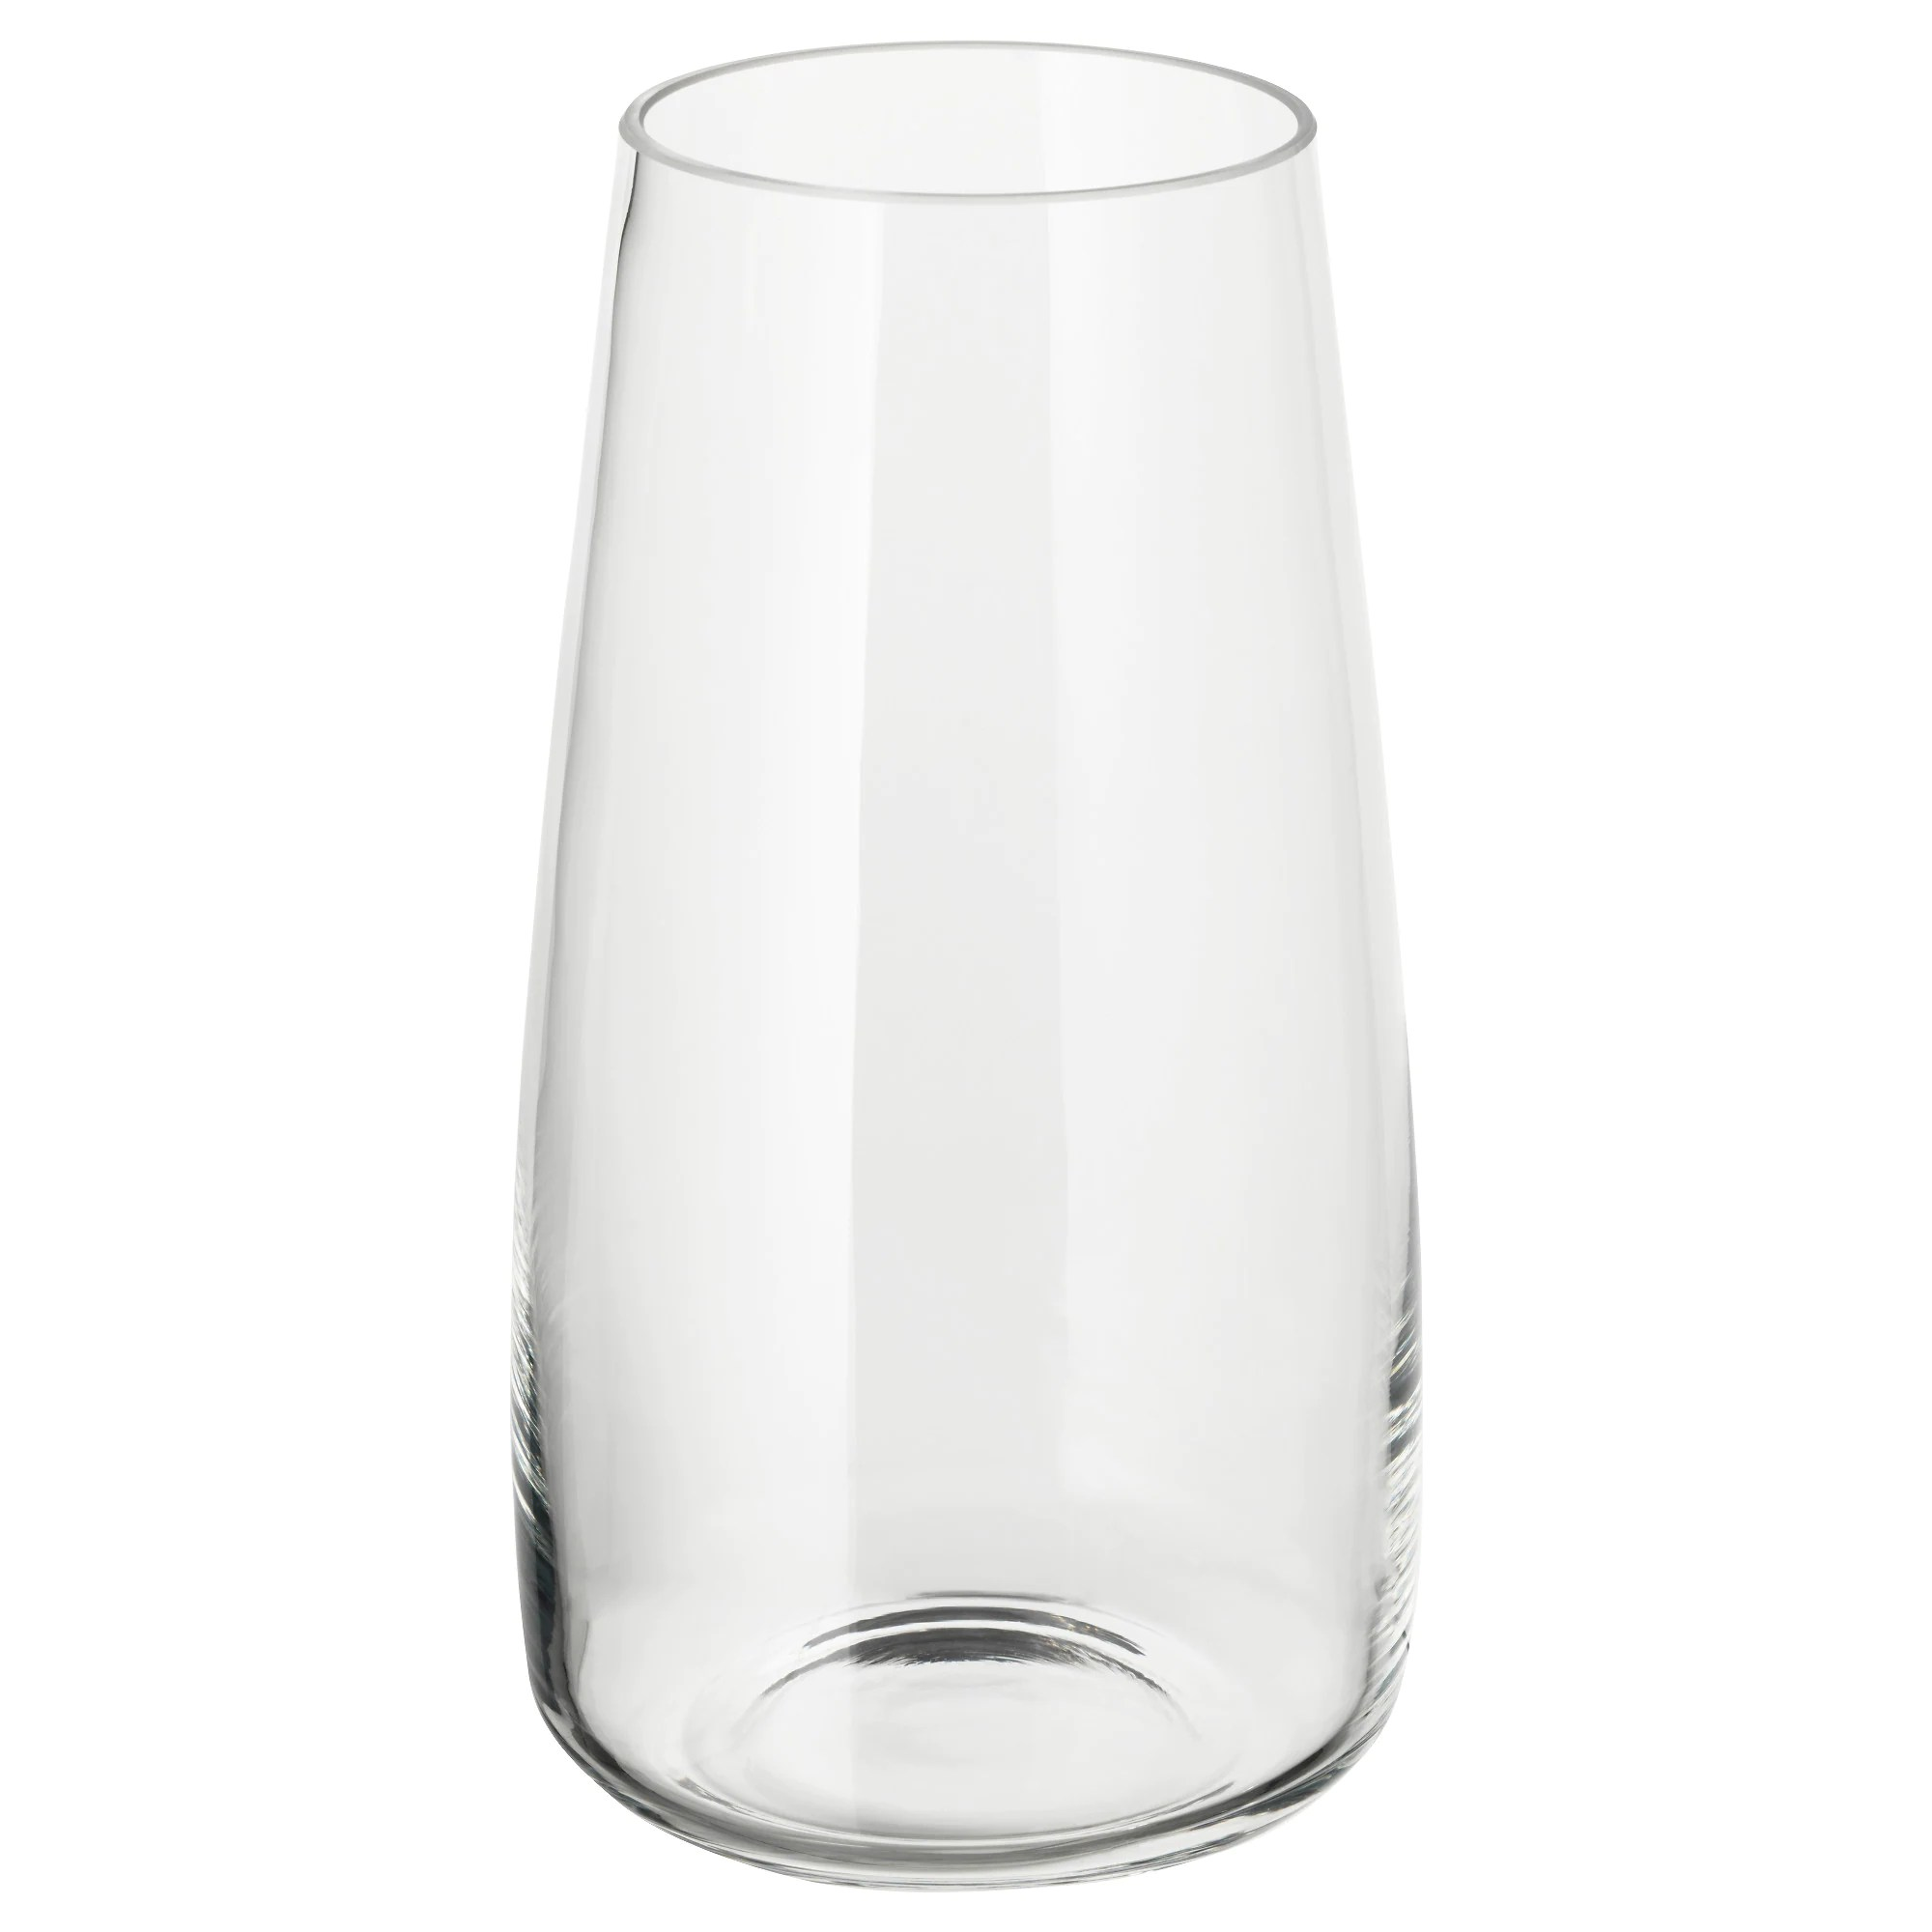 Glass Vases Ikea BerÄkna Vase Clear Glass